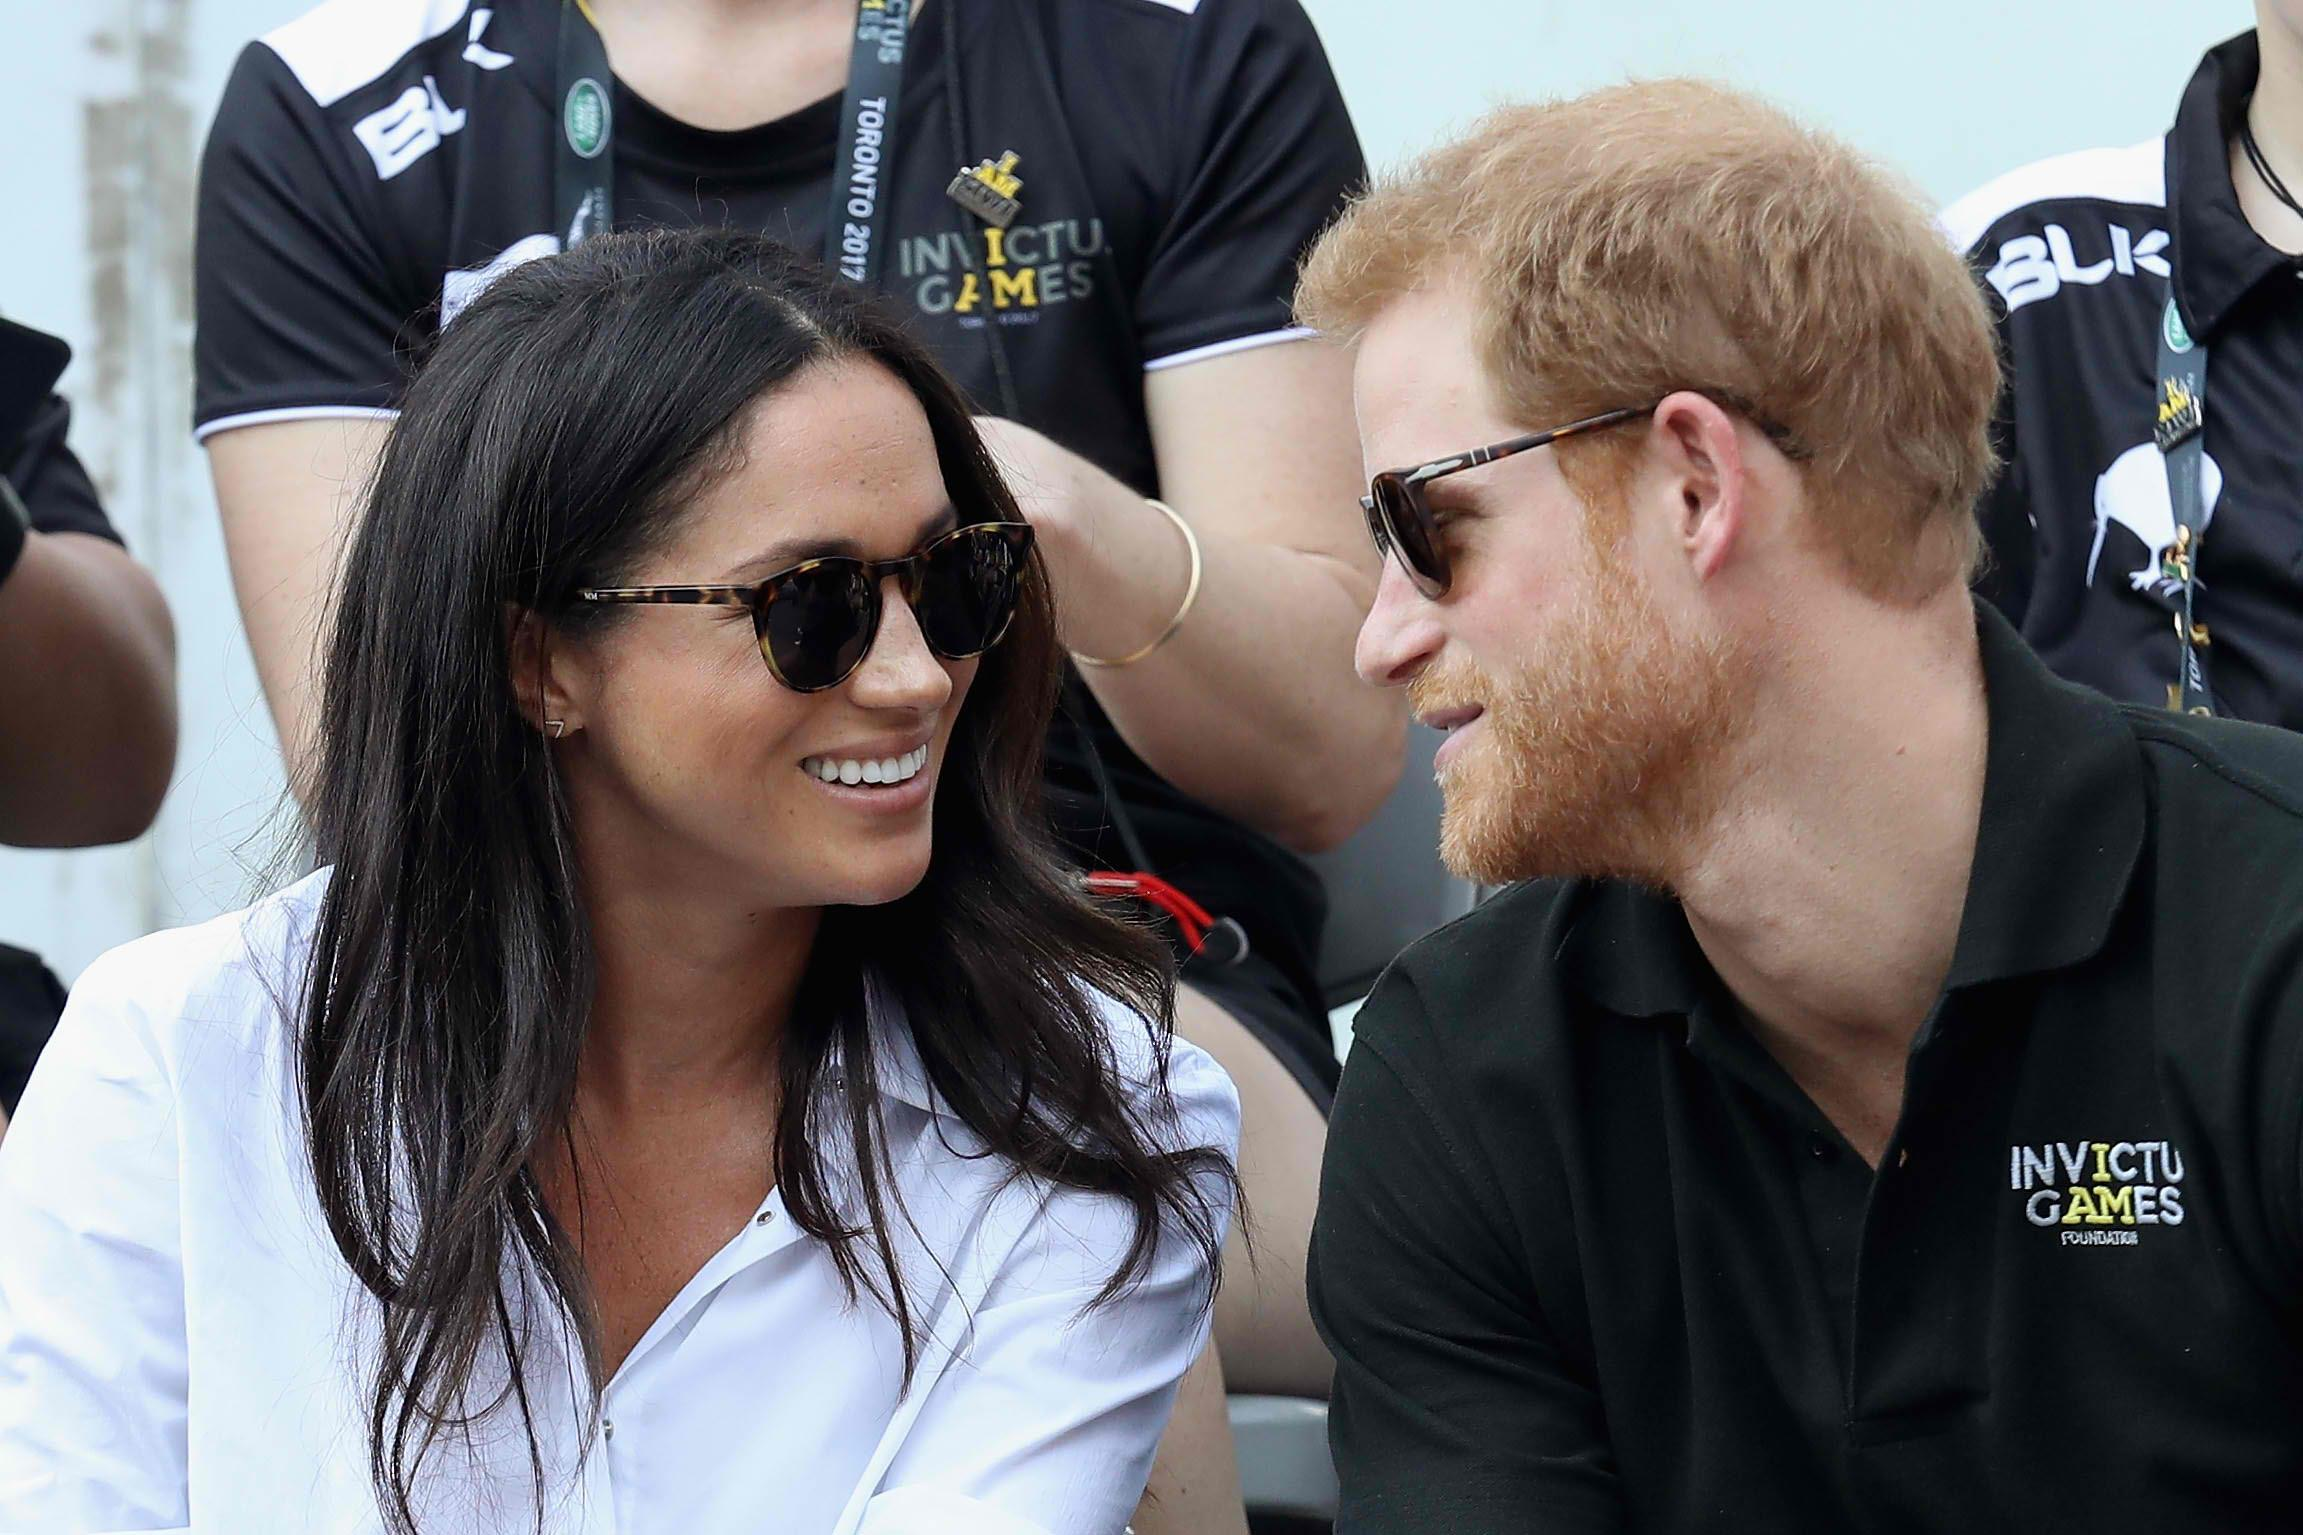 Bets SUSPENDED as Prince Harry and Meghan Markle 'READY' to announce engagement